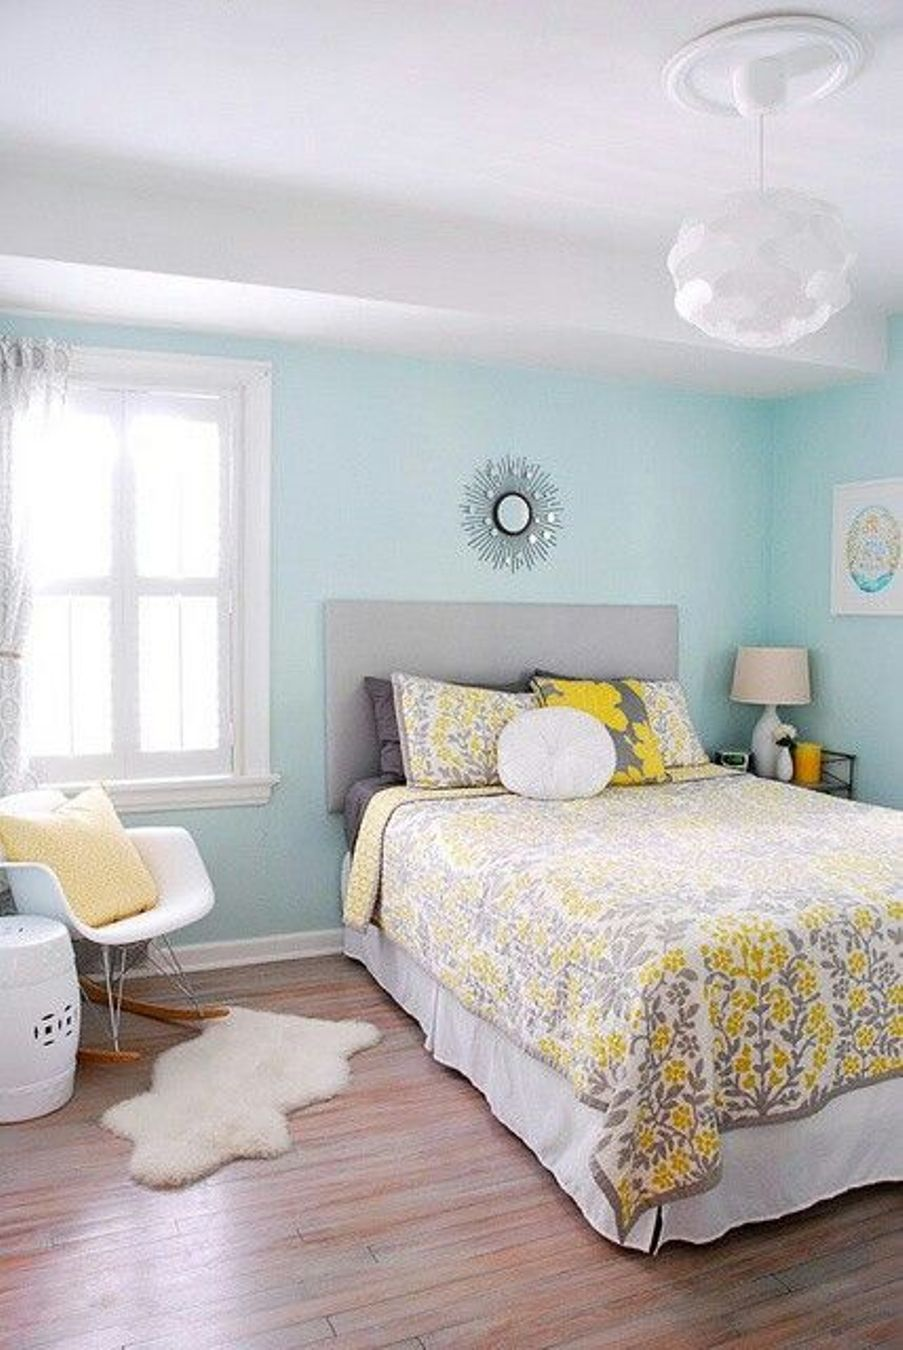 Best Paint Color For Small Windowless Room